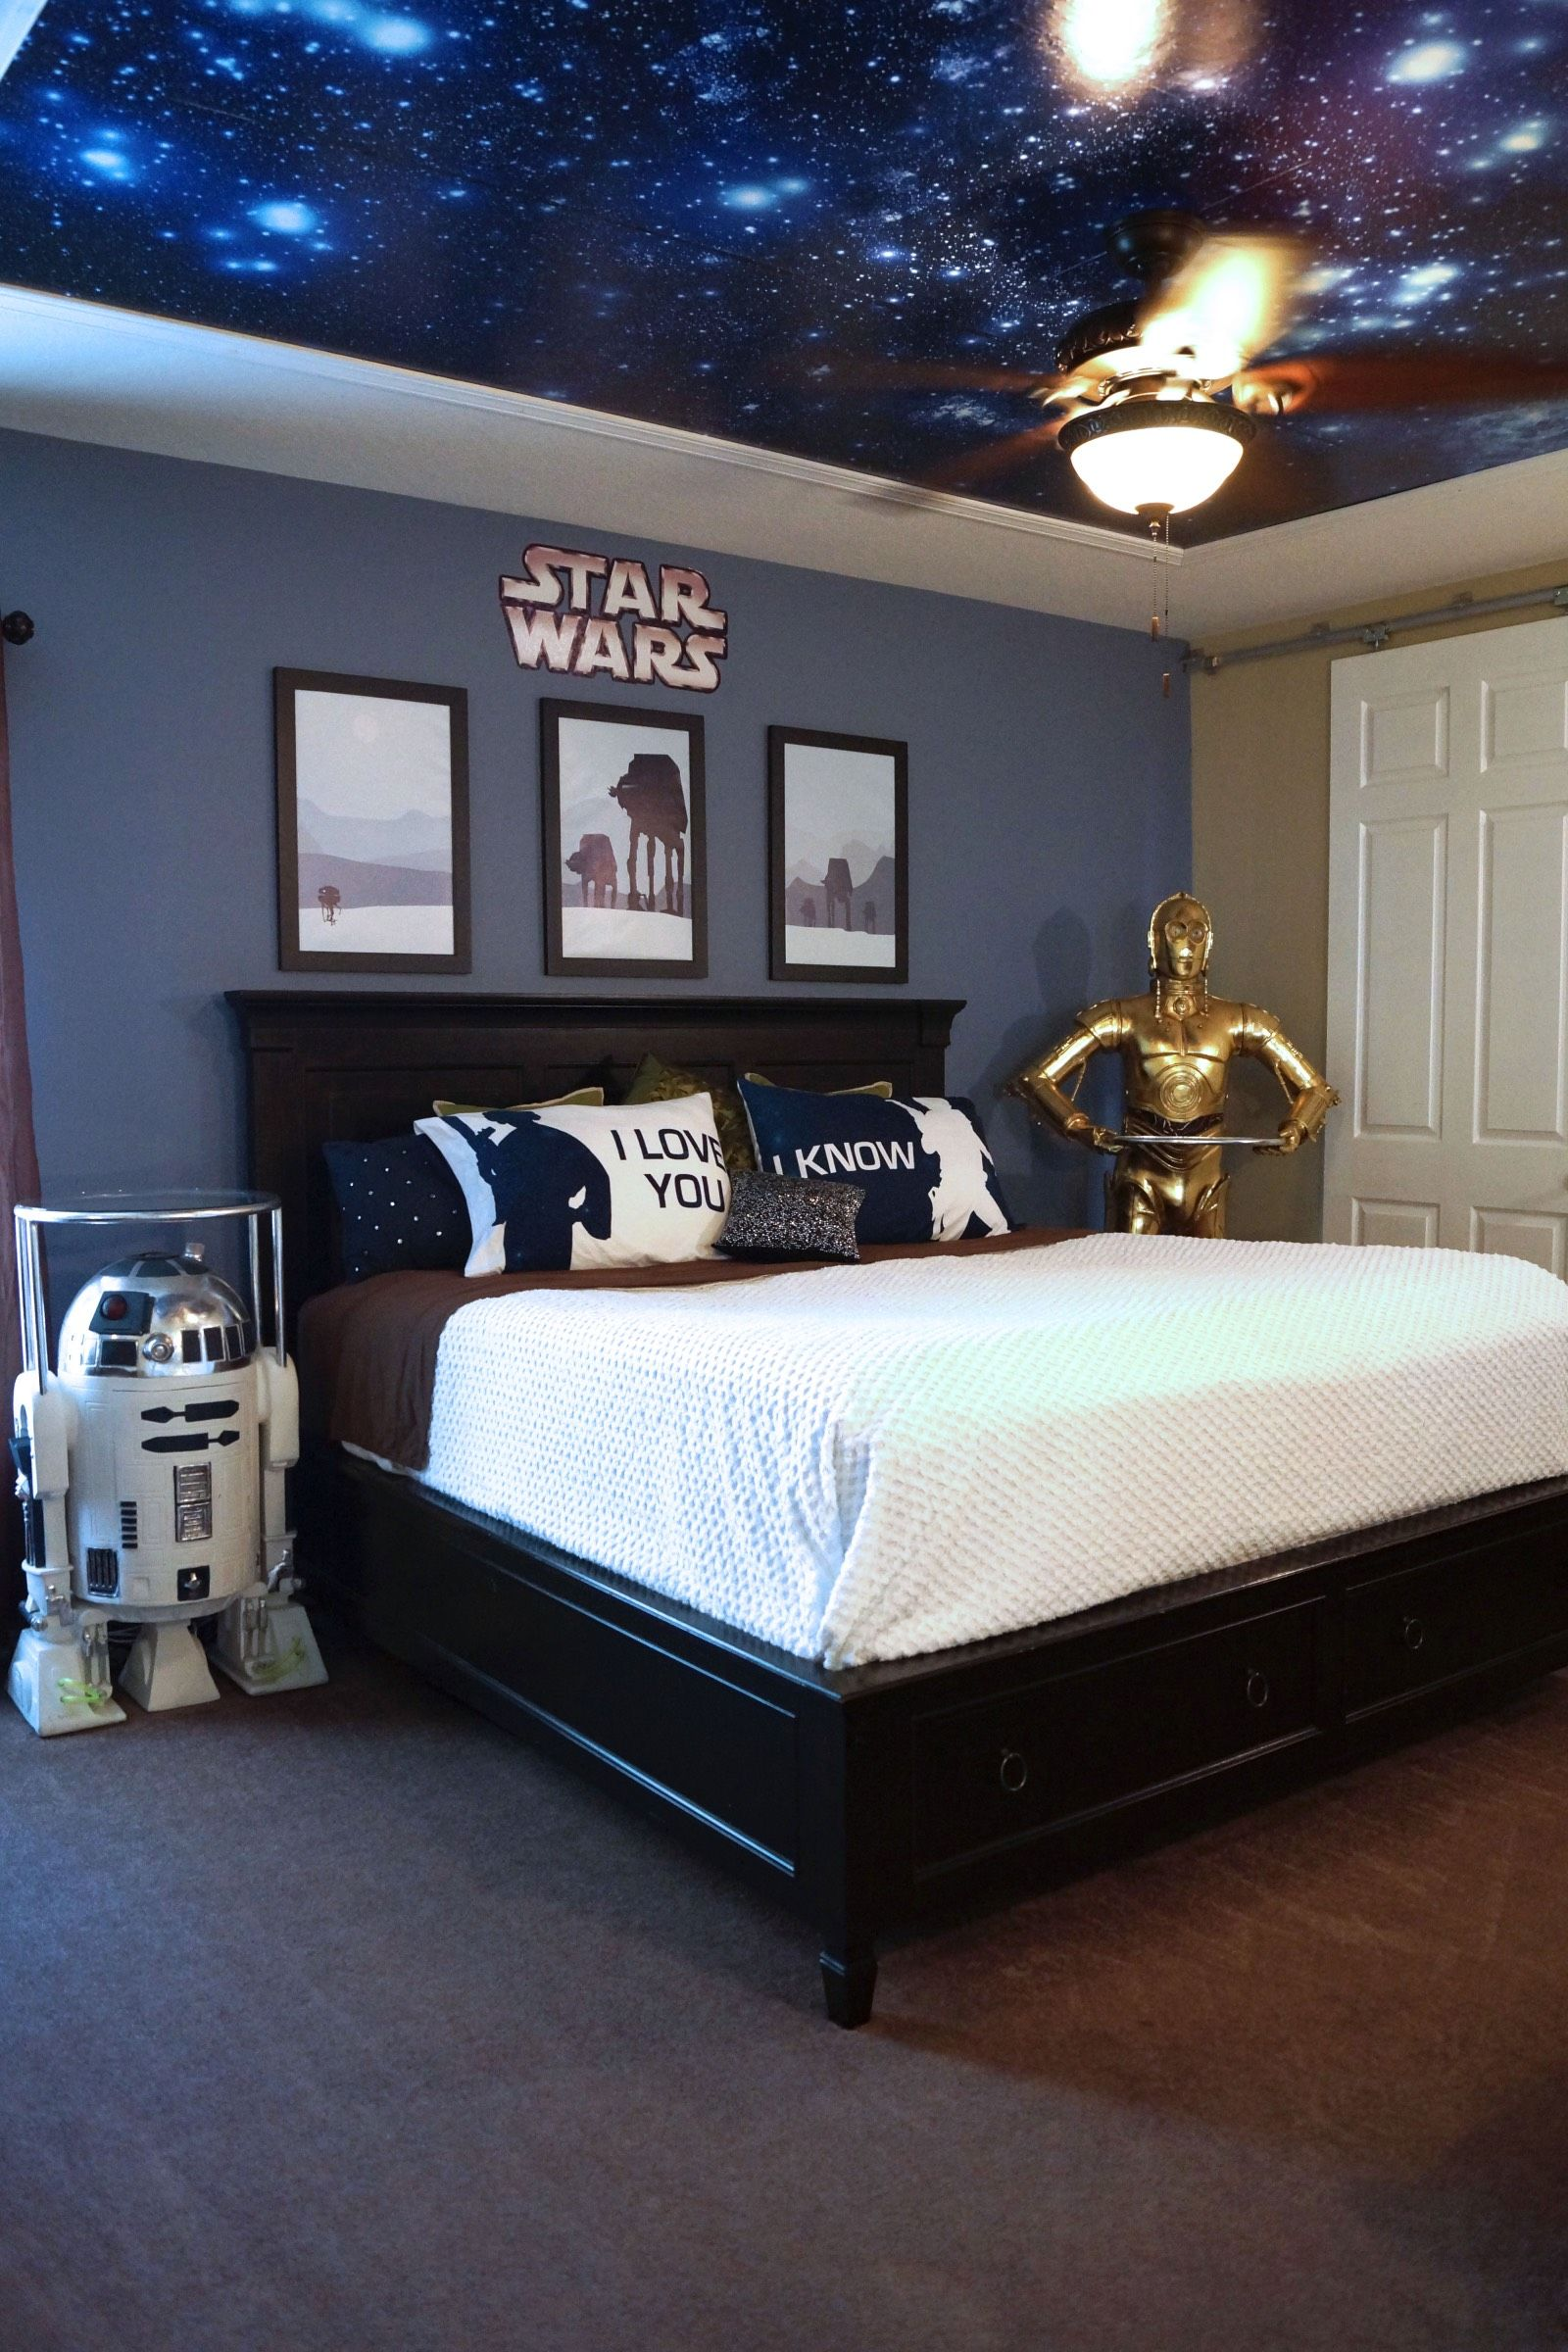 Image result for star wars bedroom | Star Wars Room in ...